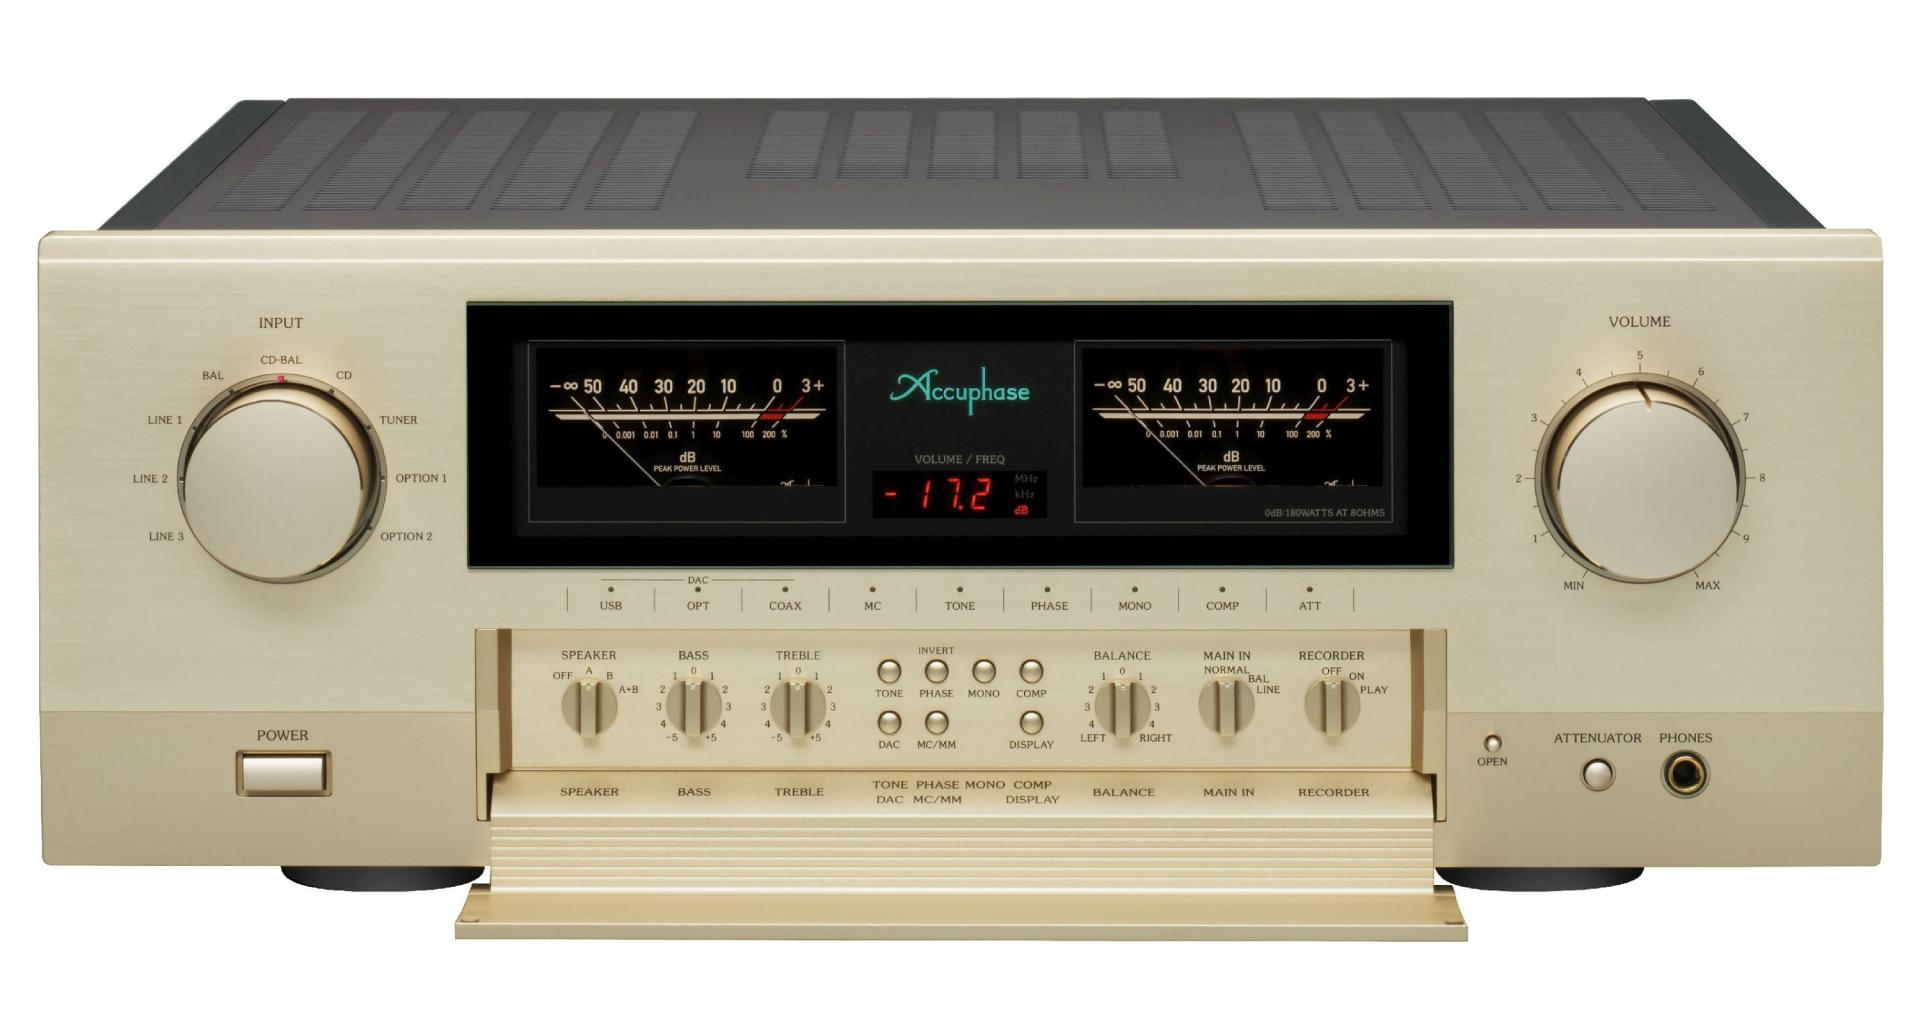 Ampli Accuphase E-480 | Anh Duy Audio